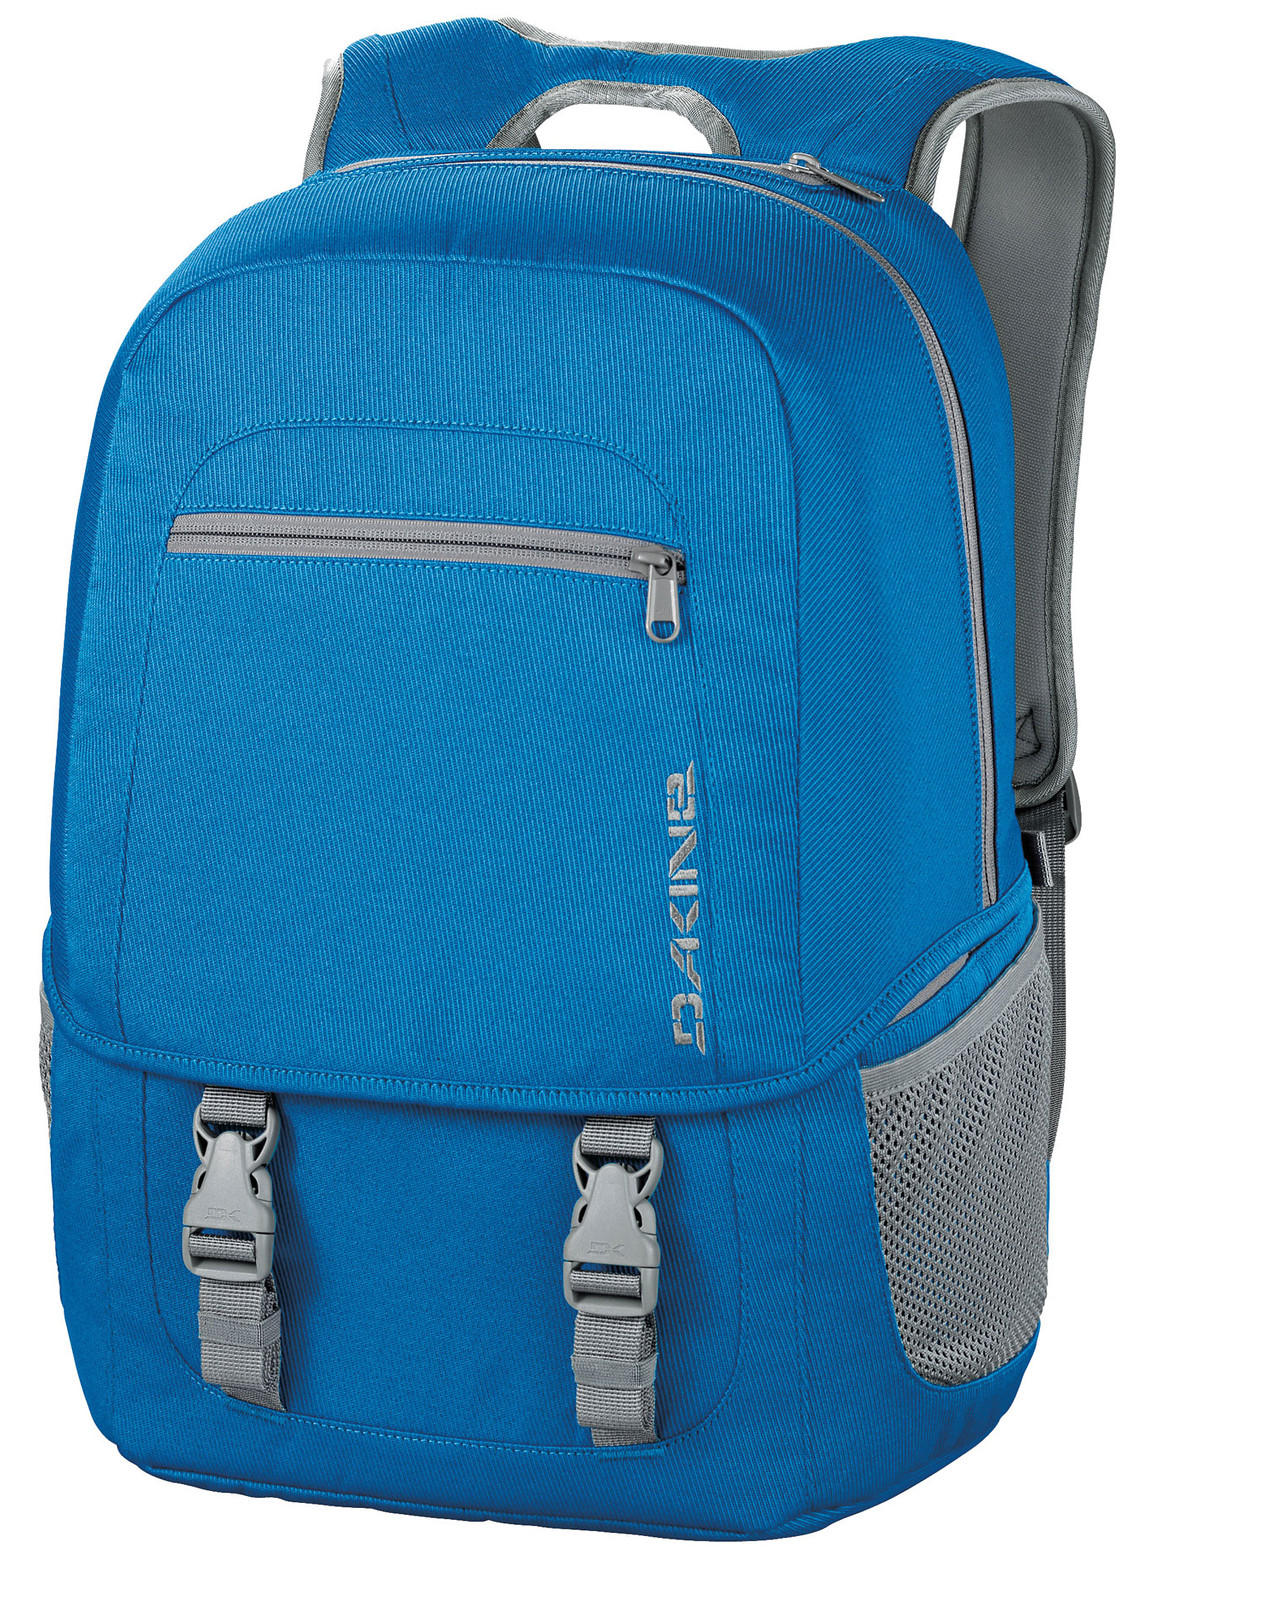 Dakine Cooler Backpack lxhm0RpL